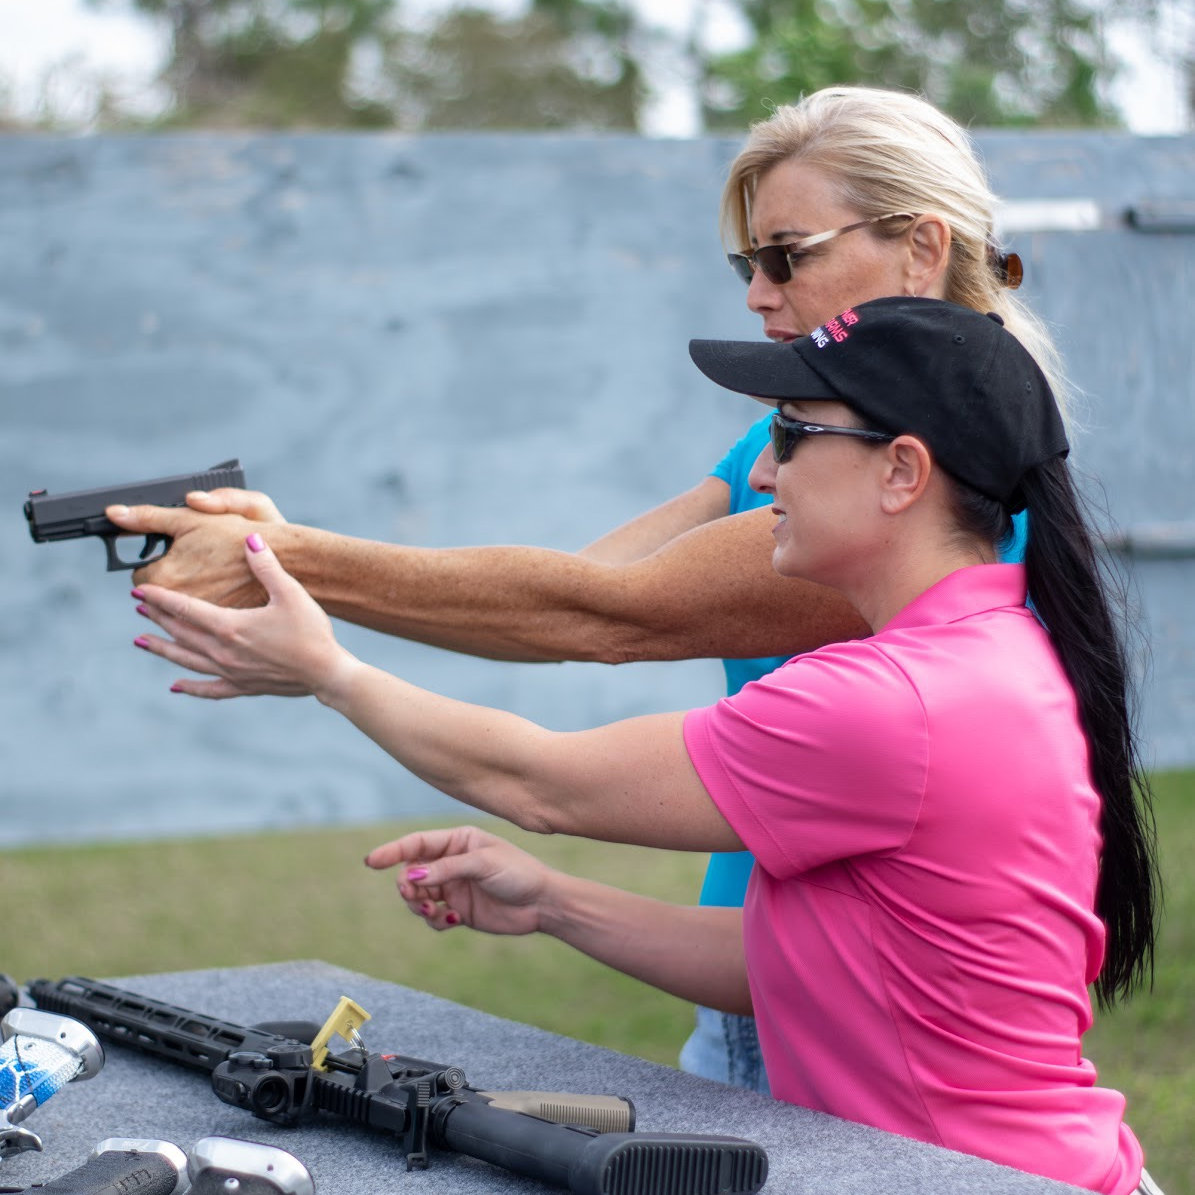 Ladies Practical Concealed Carry Class